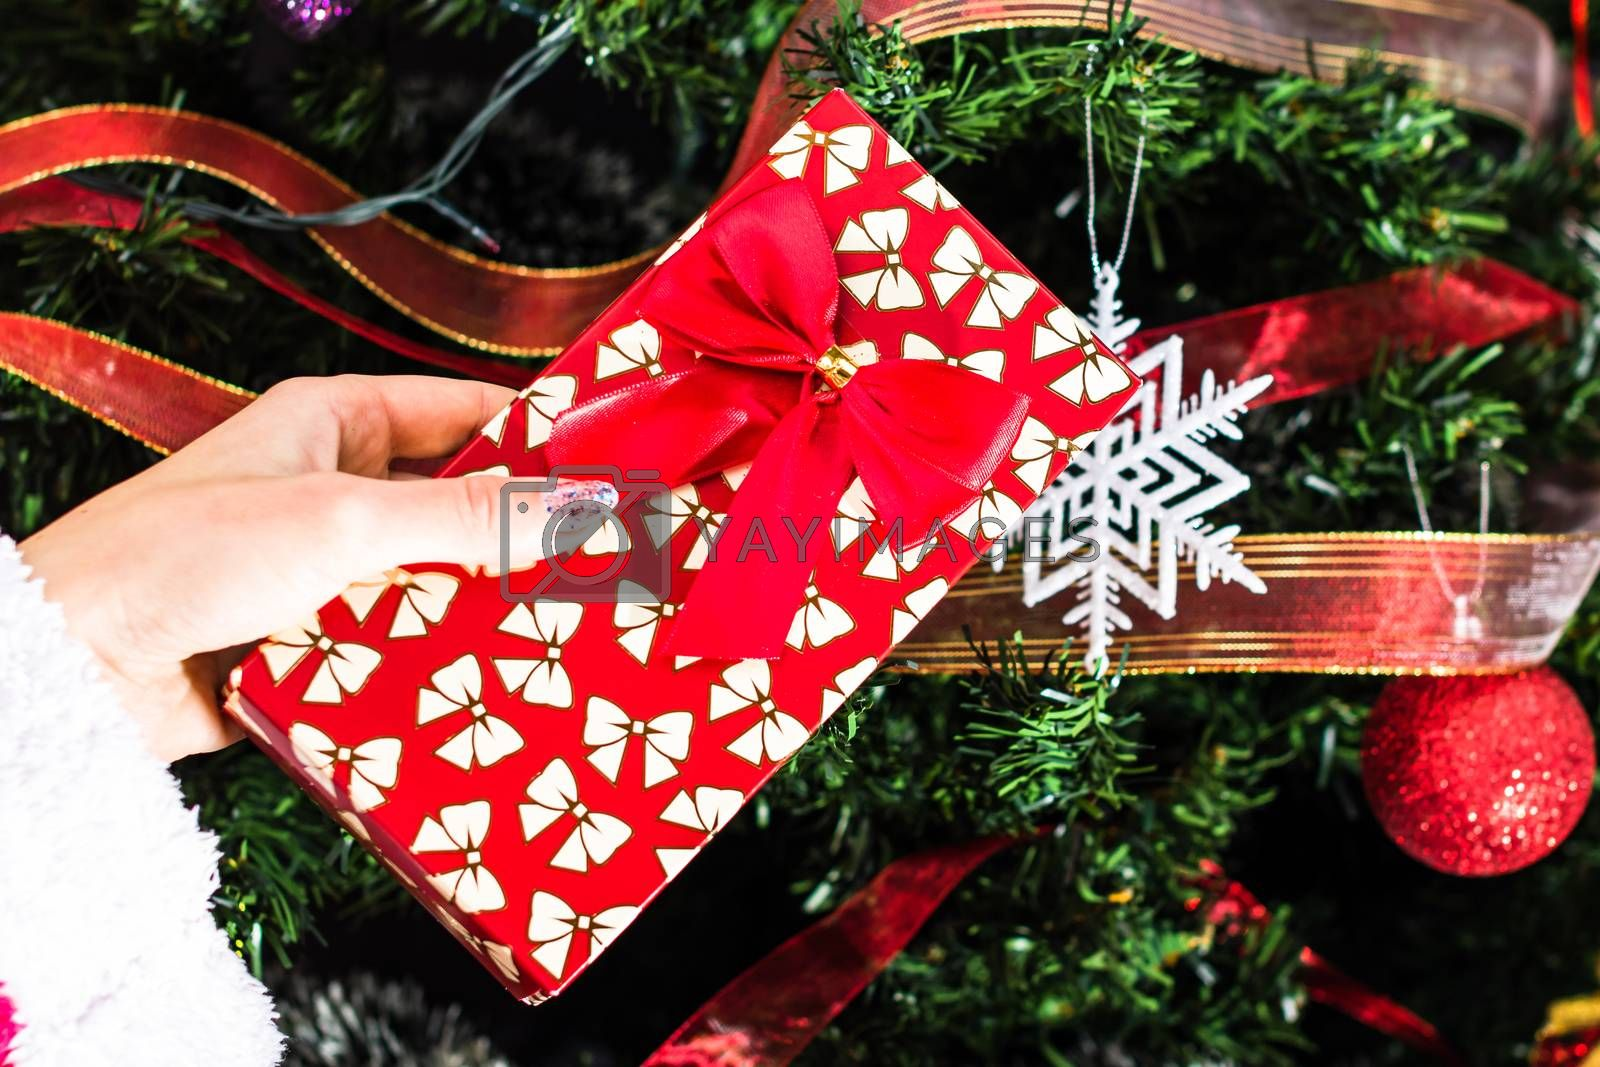 Hand holding present gift box in front of the Chhristmas tree.